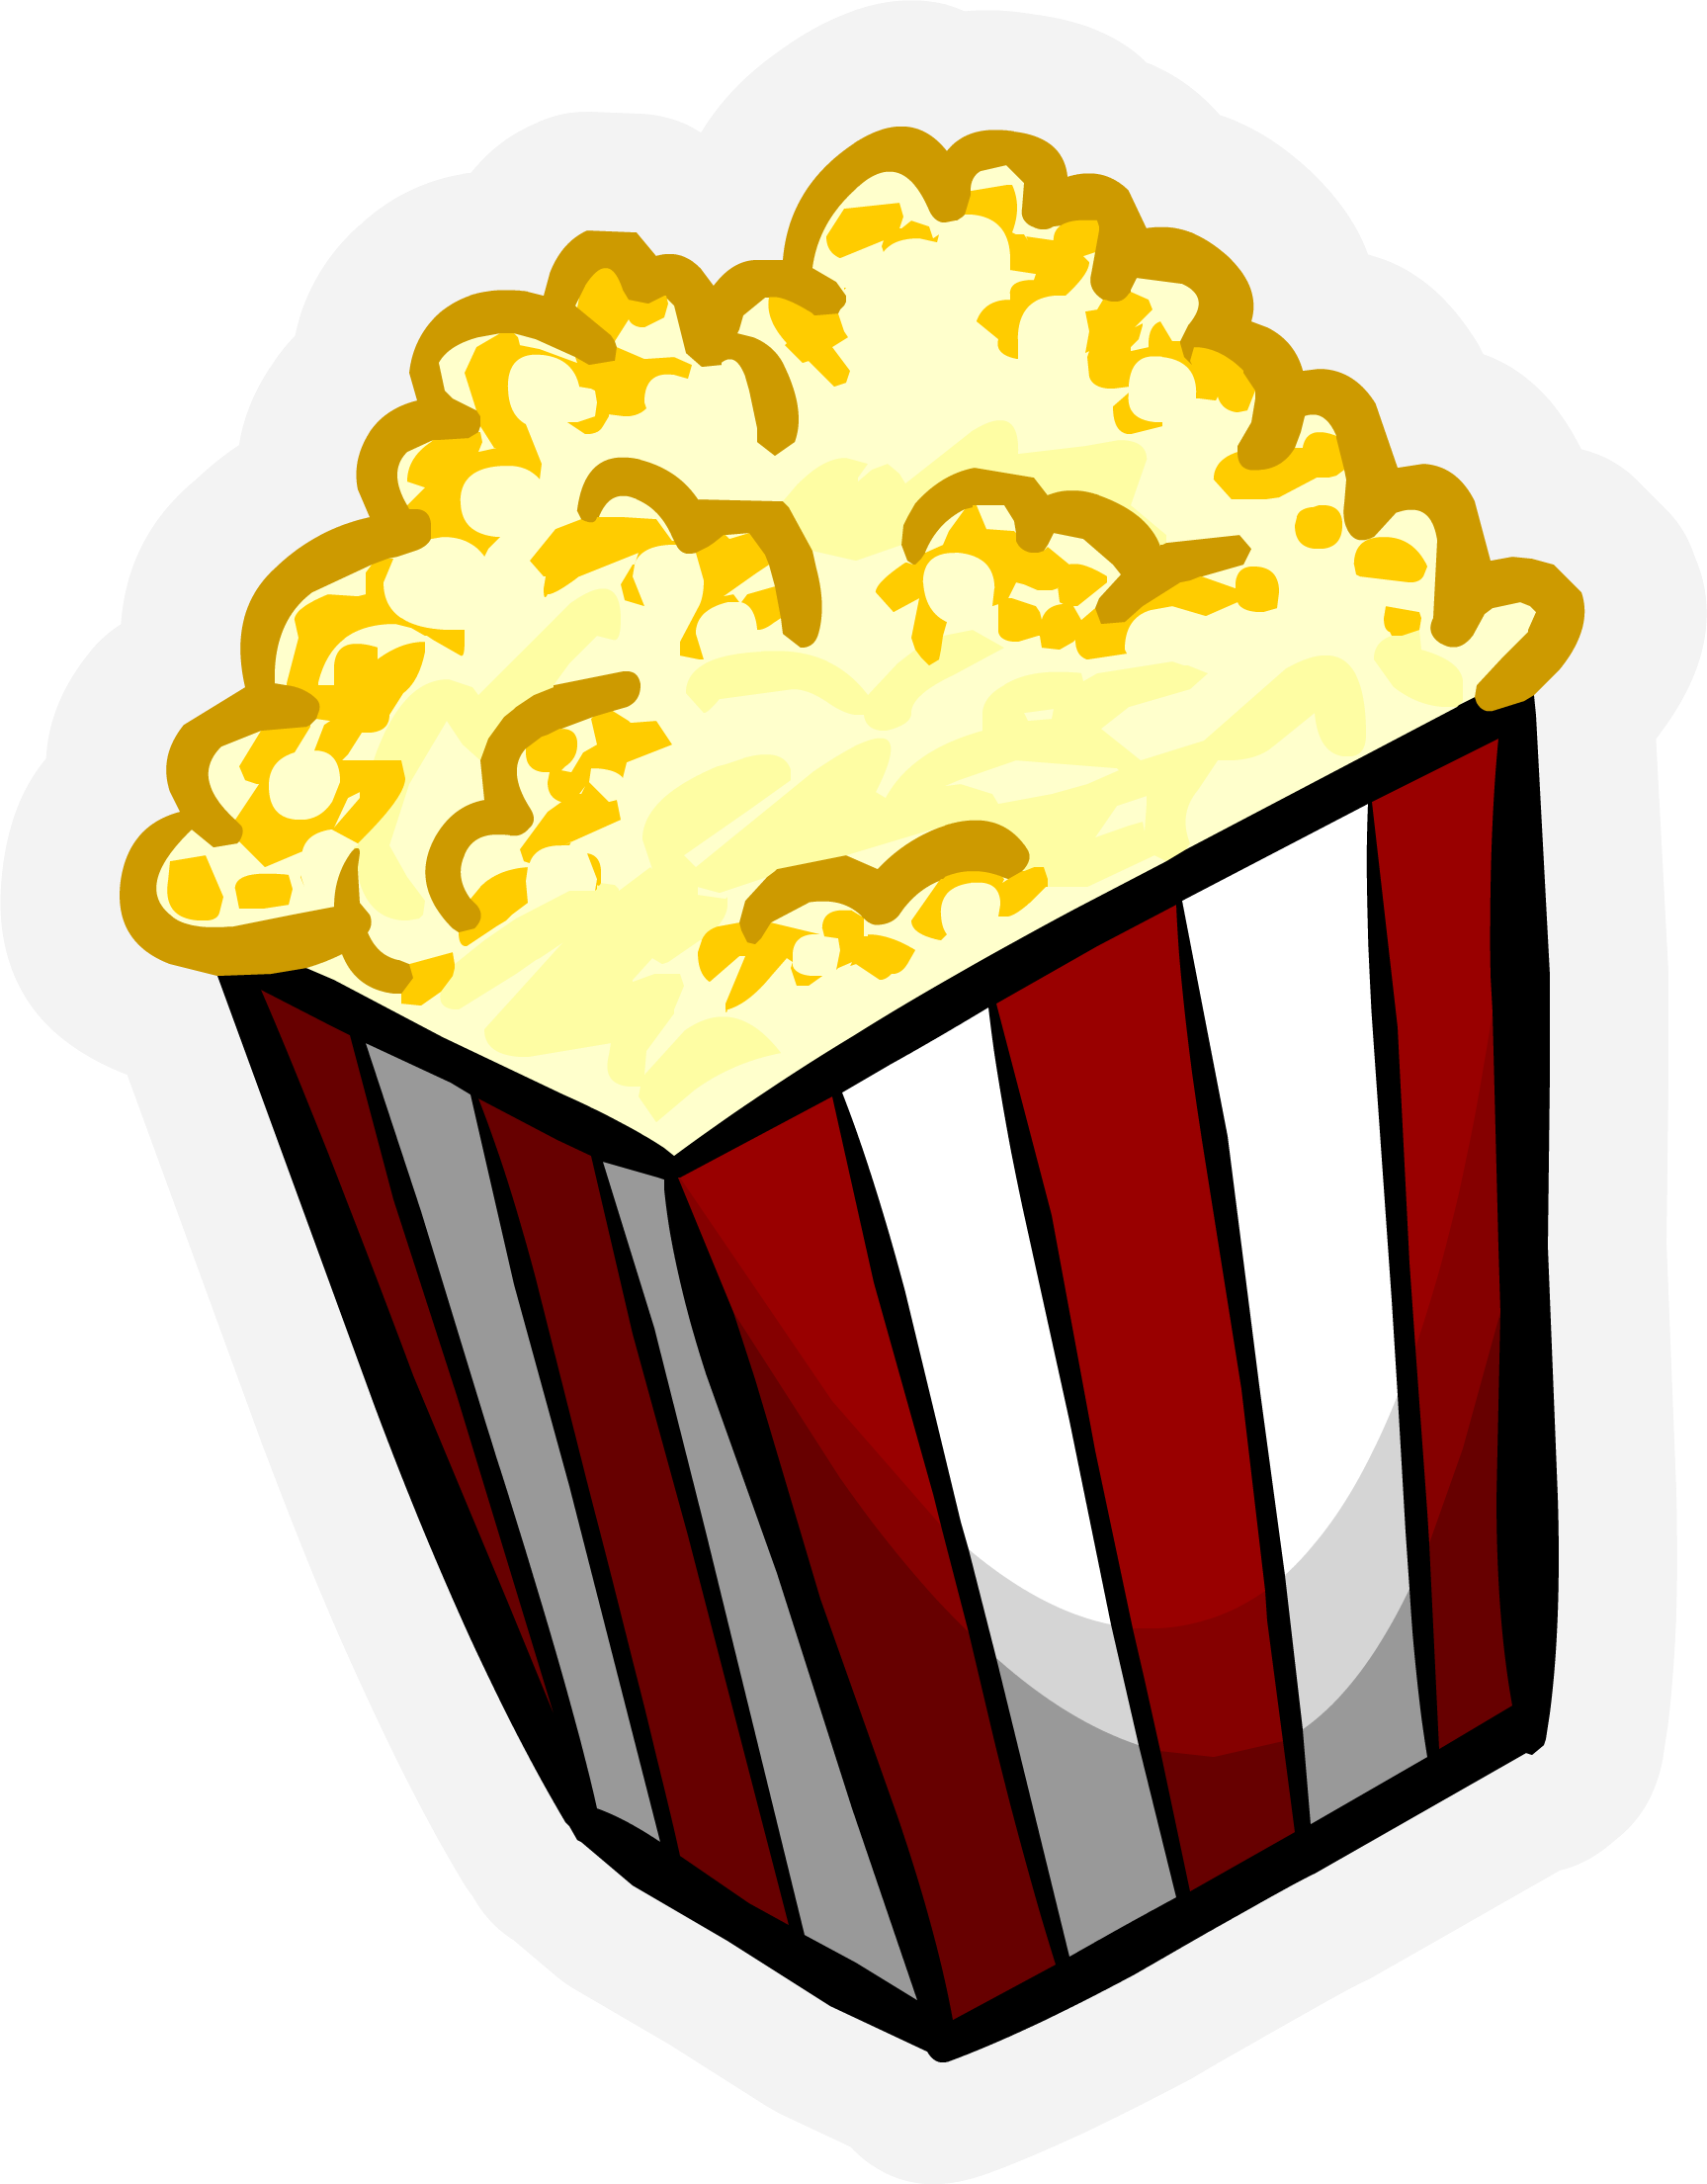 popcorn pin club penguin wiki fandom powered by wikia book club clipart free book club clipart black and white free